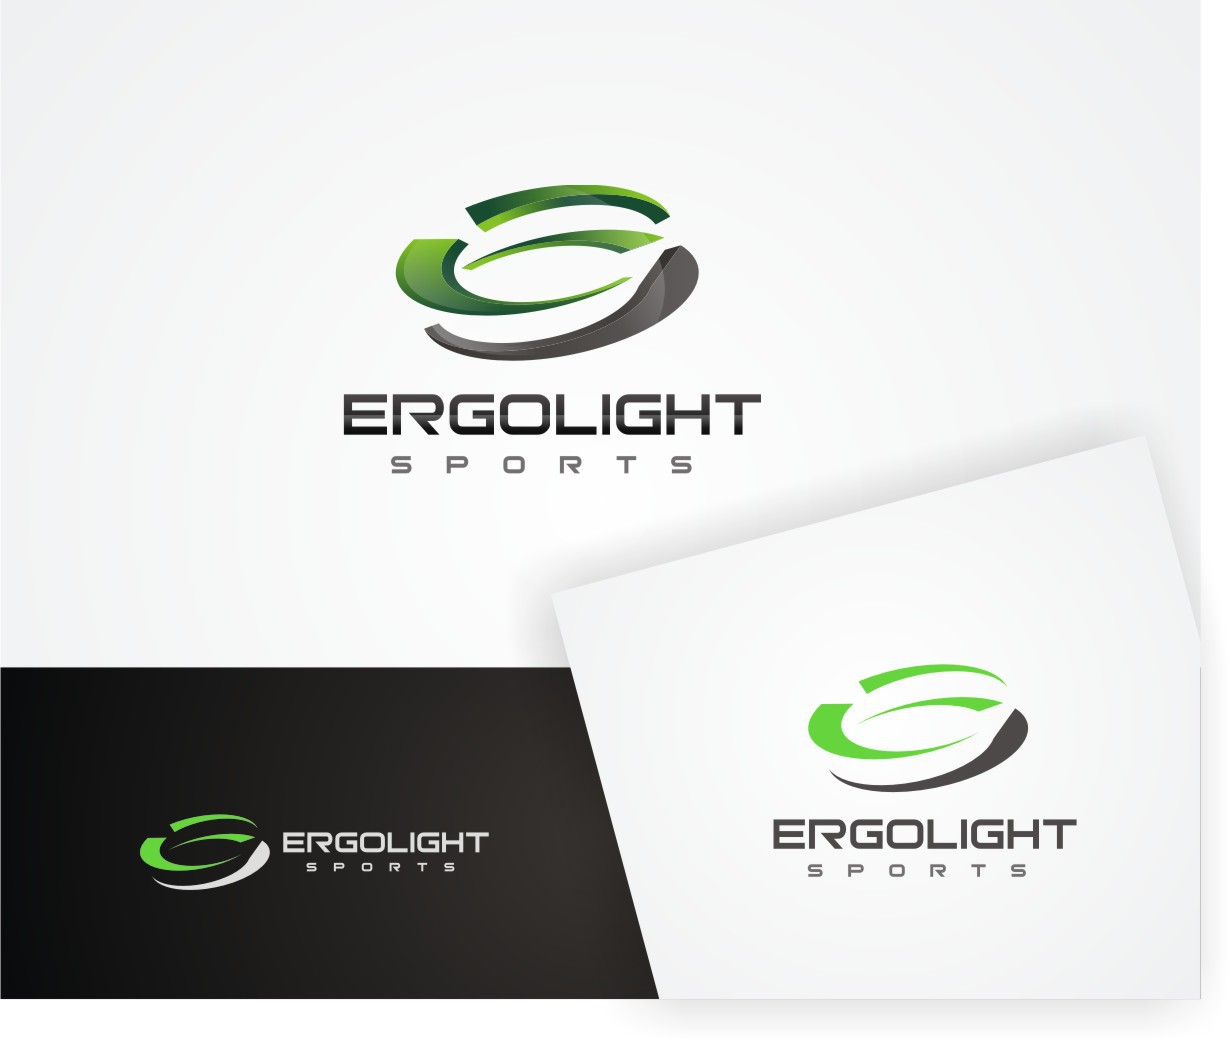 Modern and dynamic logo for a sports brand